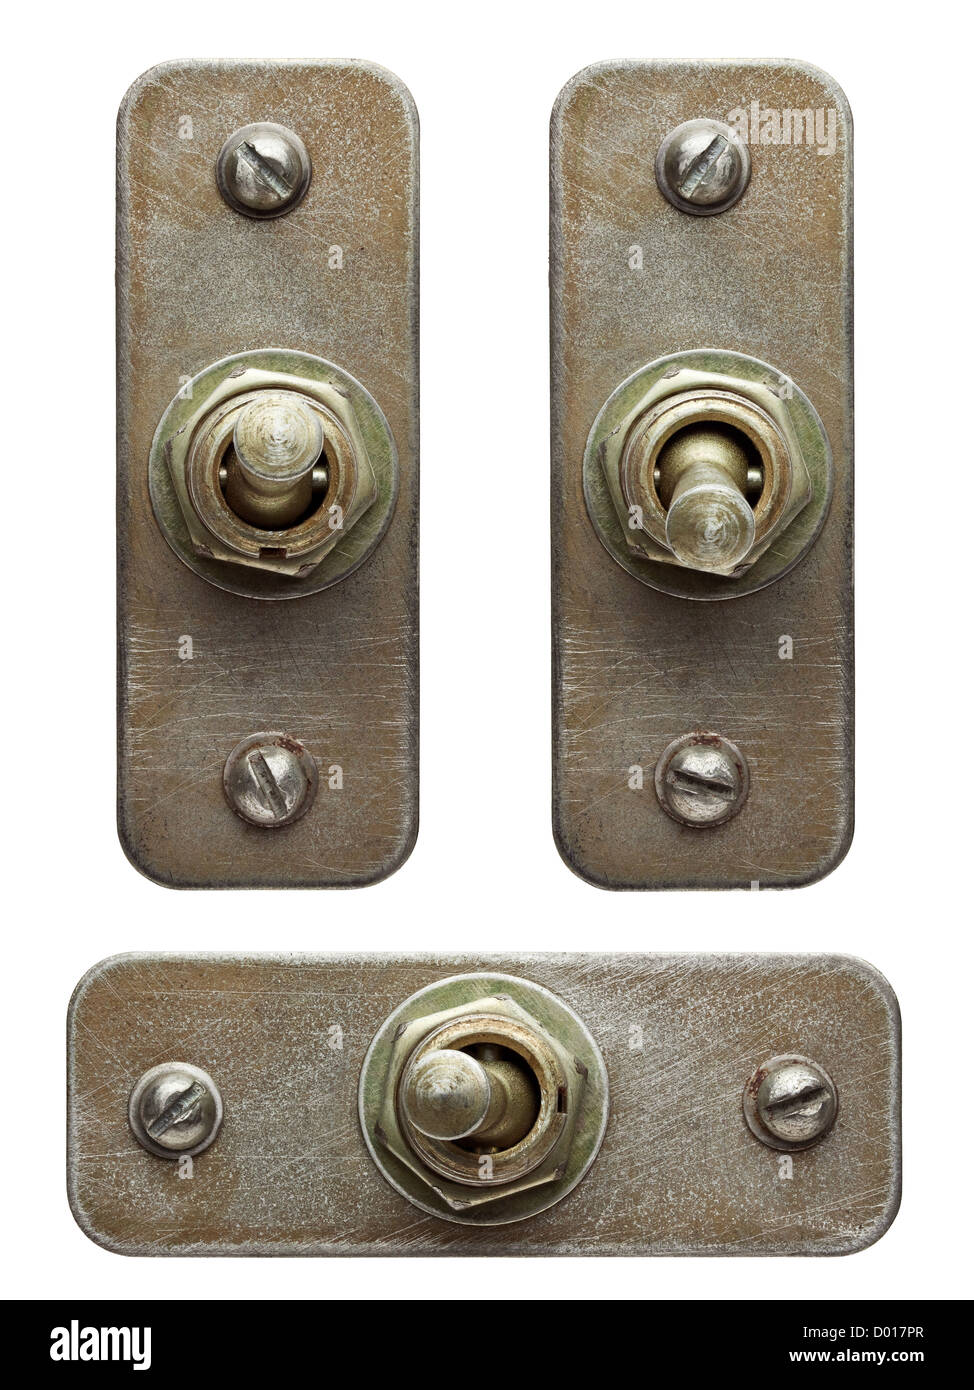 Aged metal toggle switches set. - Stock Image